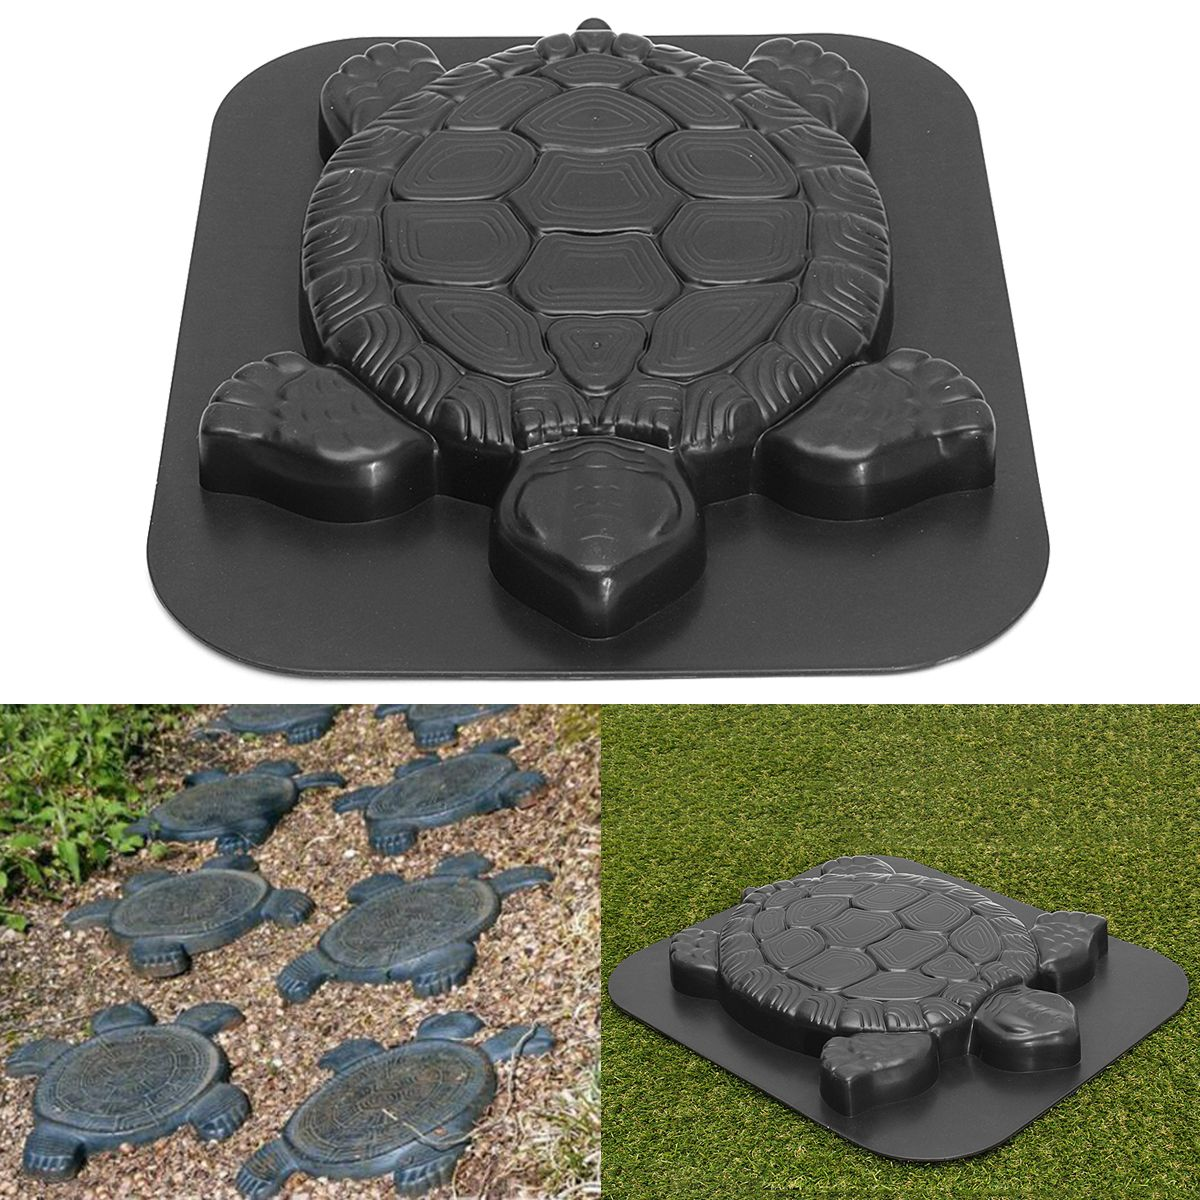 Creative Concrete Cement Mold, Turtle/Flower Design Stepping Stone Mould Paving Mold for Garden Park Path Walk Way - Walmart.com -   13 garden design Narrow stepping stones ideas